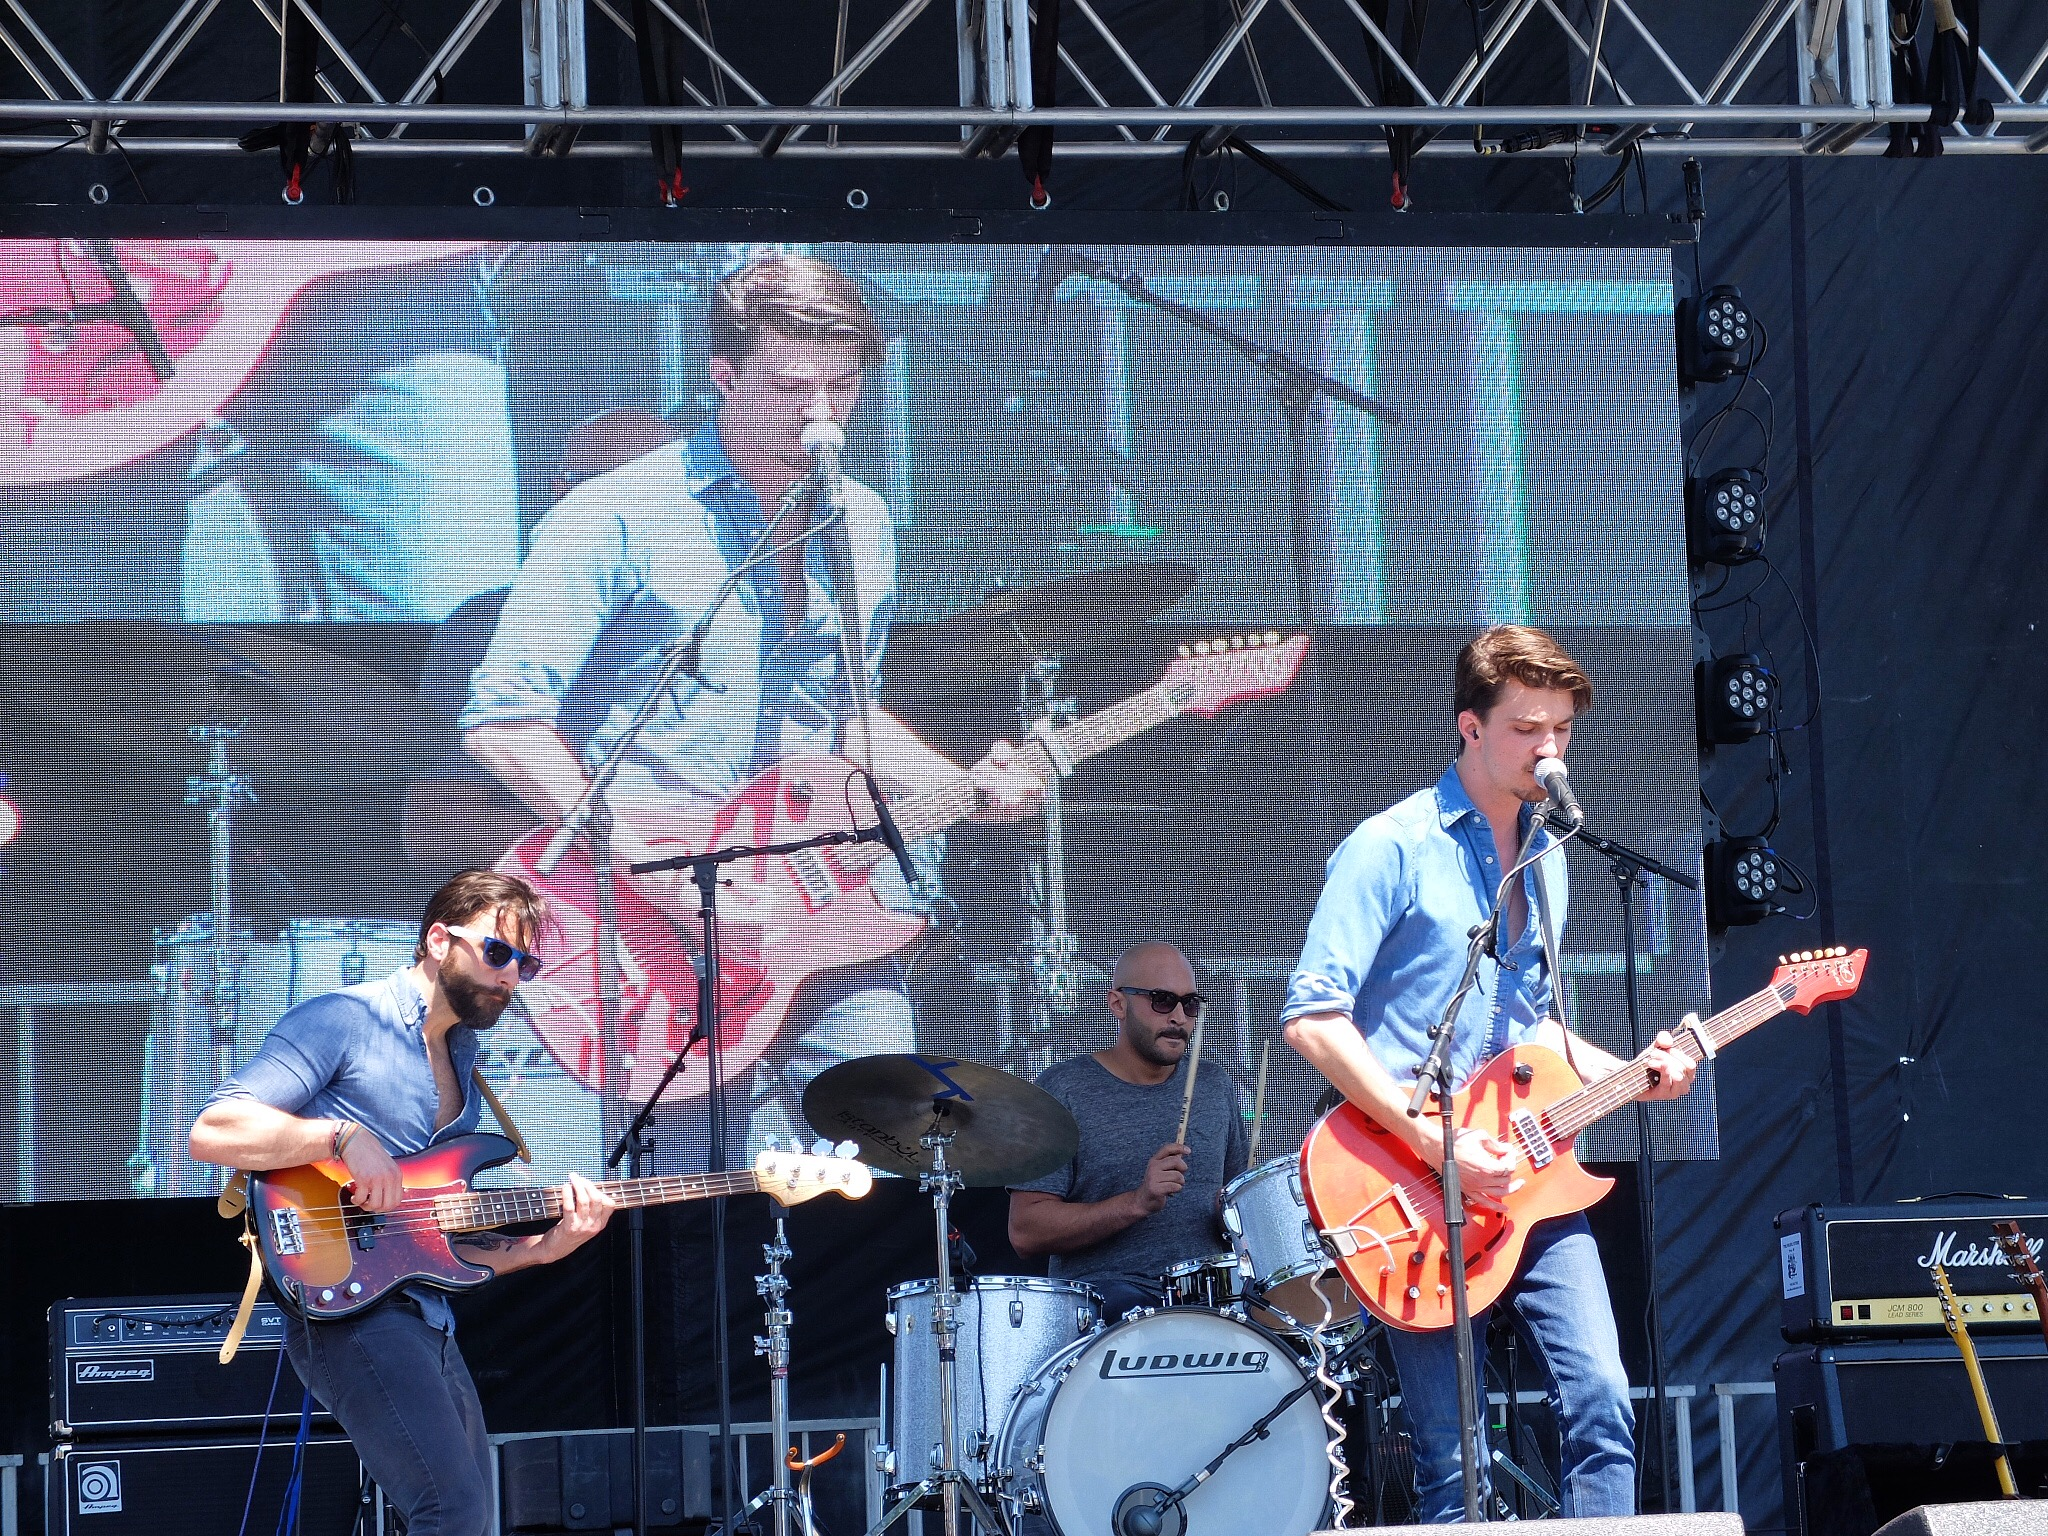 Chase Kerby and the Villians  played the Main Stage shortly after LTZ. Chase and I went to the same highschool and ended up founding Tree & Leaf together, and actually the name, Tree & Leaf, was Chase's idea! Down the road Chase rightfully chose to pursue his passion of music and it was the right choice. He has played along side countless artists, been featured on The Voice, and is an incredible musician and all-around great guy.